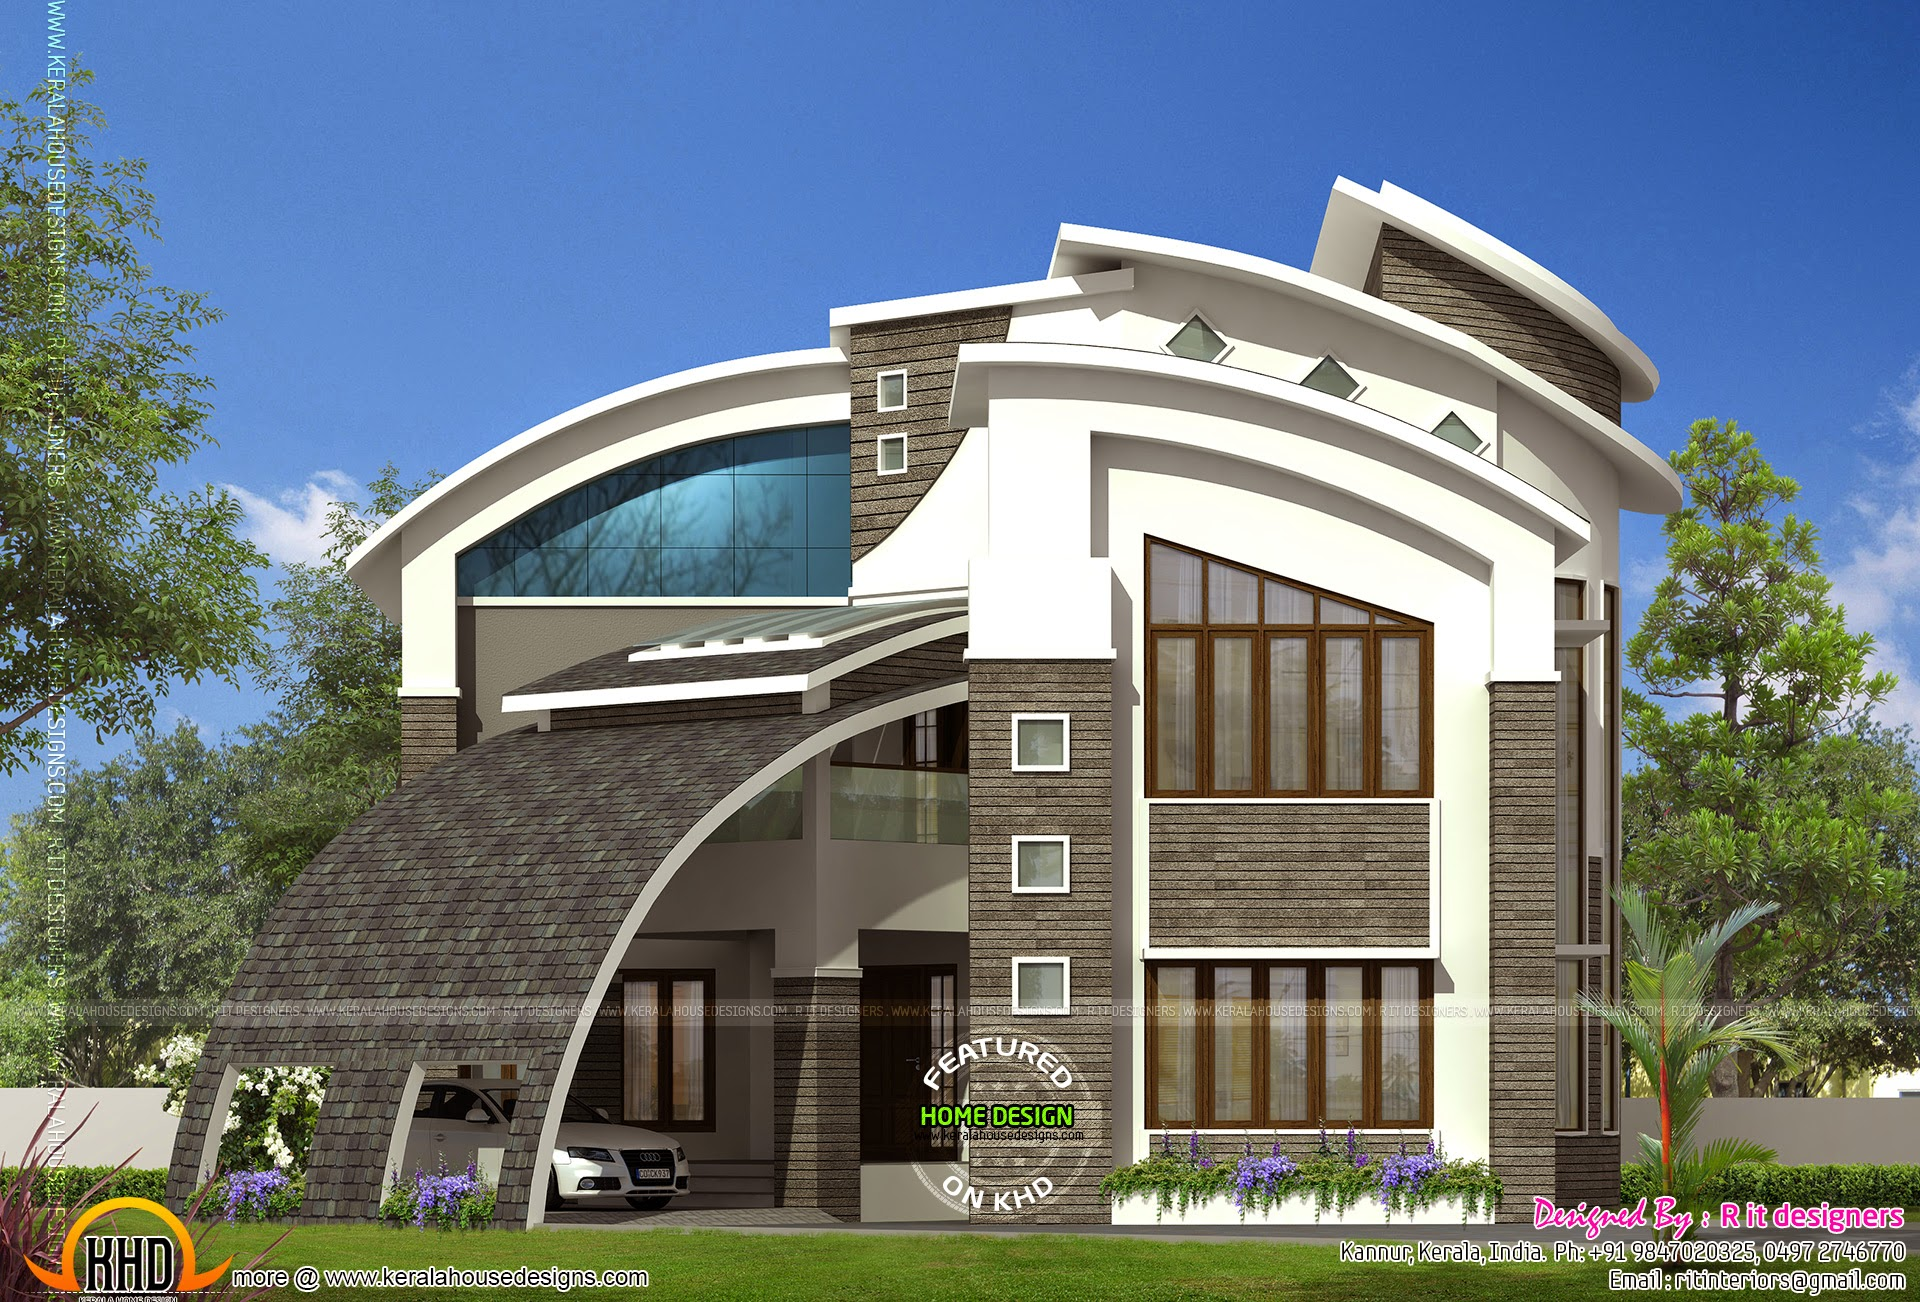 Most modern contemporary house design kerala home design for New modern house design